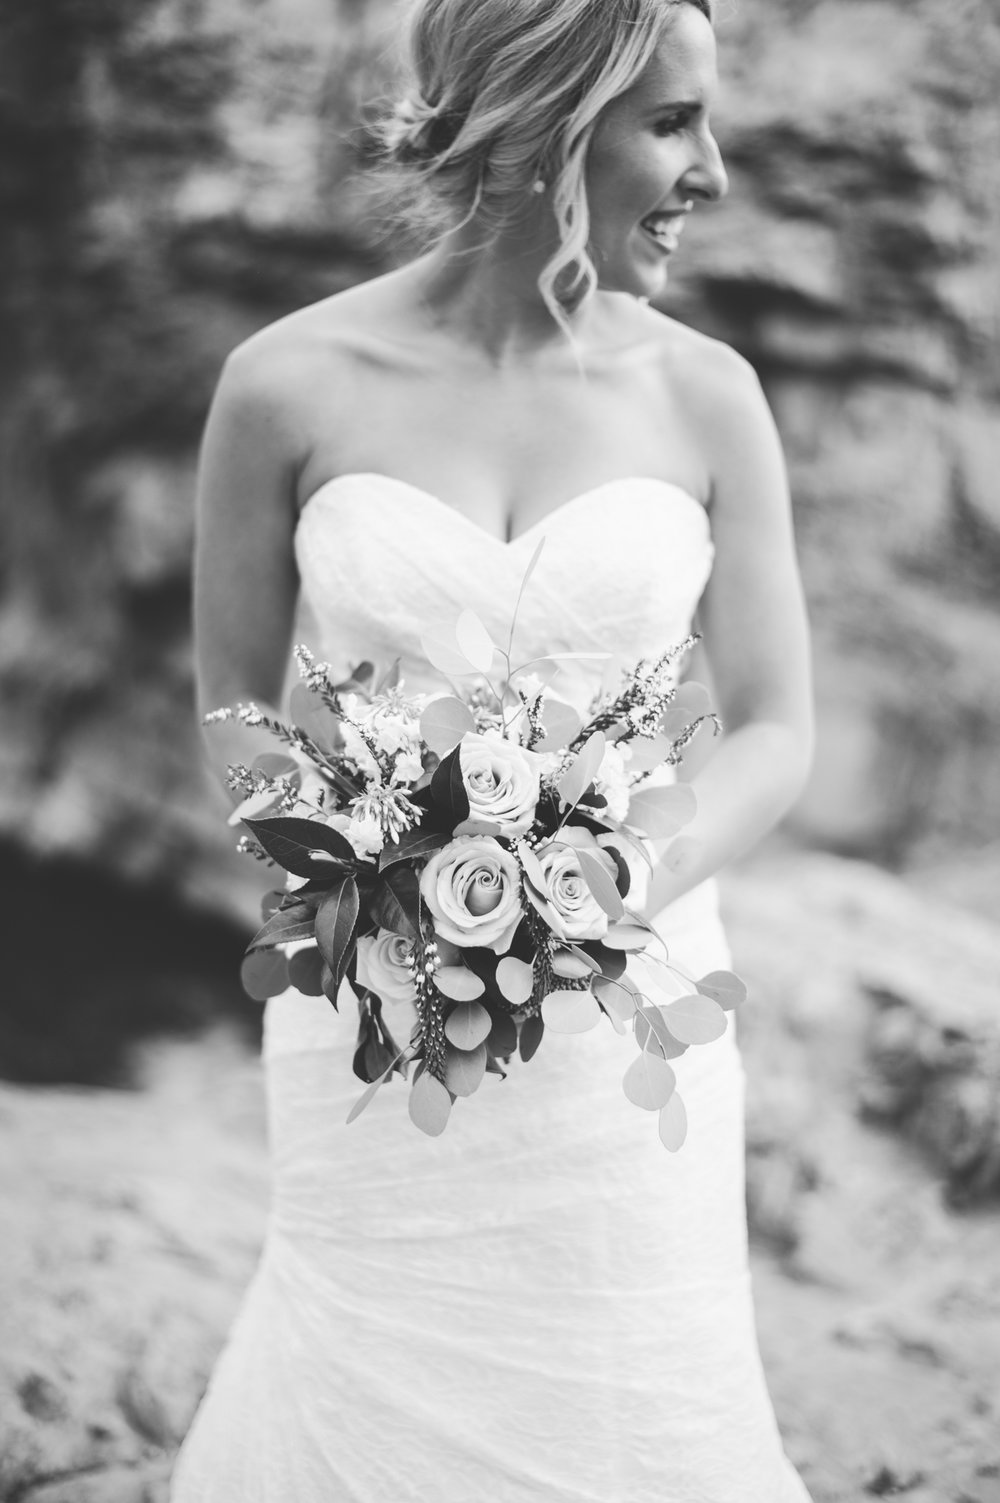 Rocky Mountain Banff Calgary Alberta Wedding-Jessika Hunter Photo-108.JPG